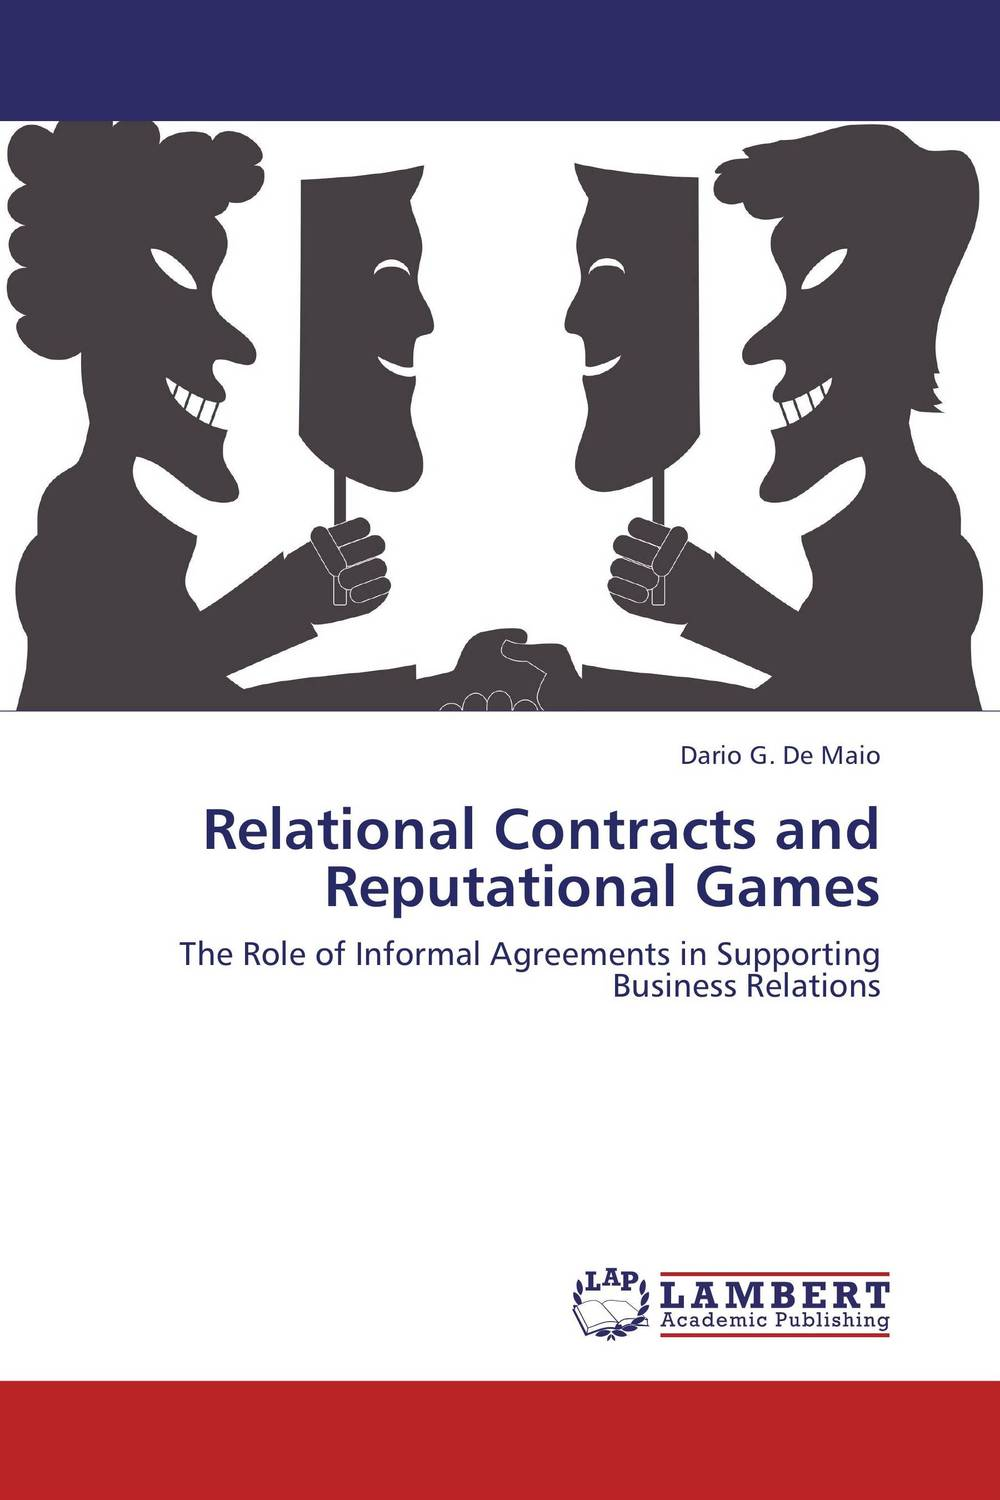 Relational Contracts and Reputational Games